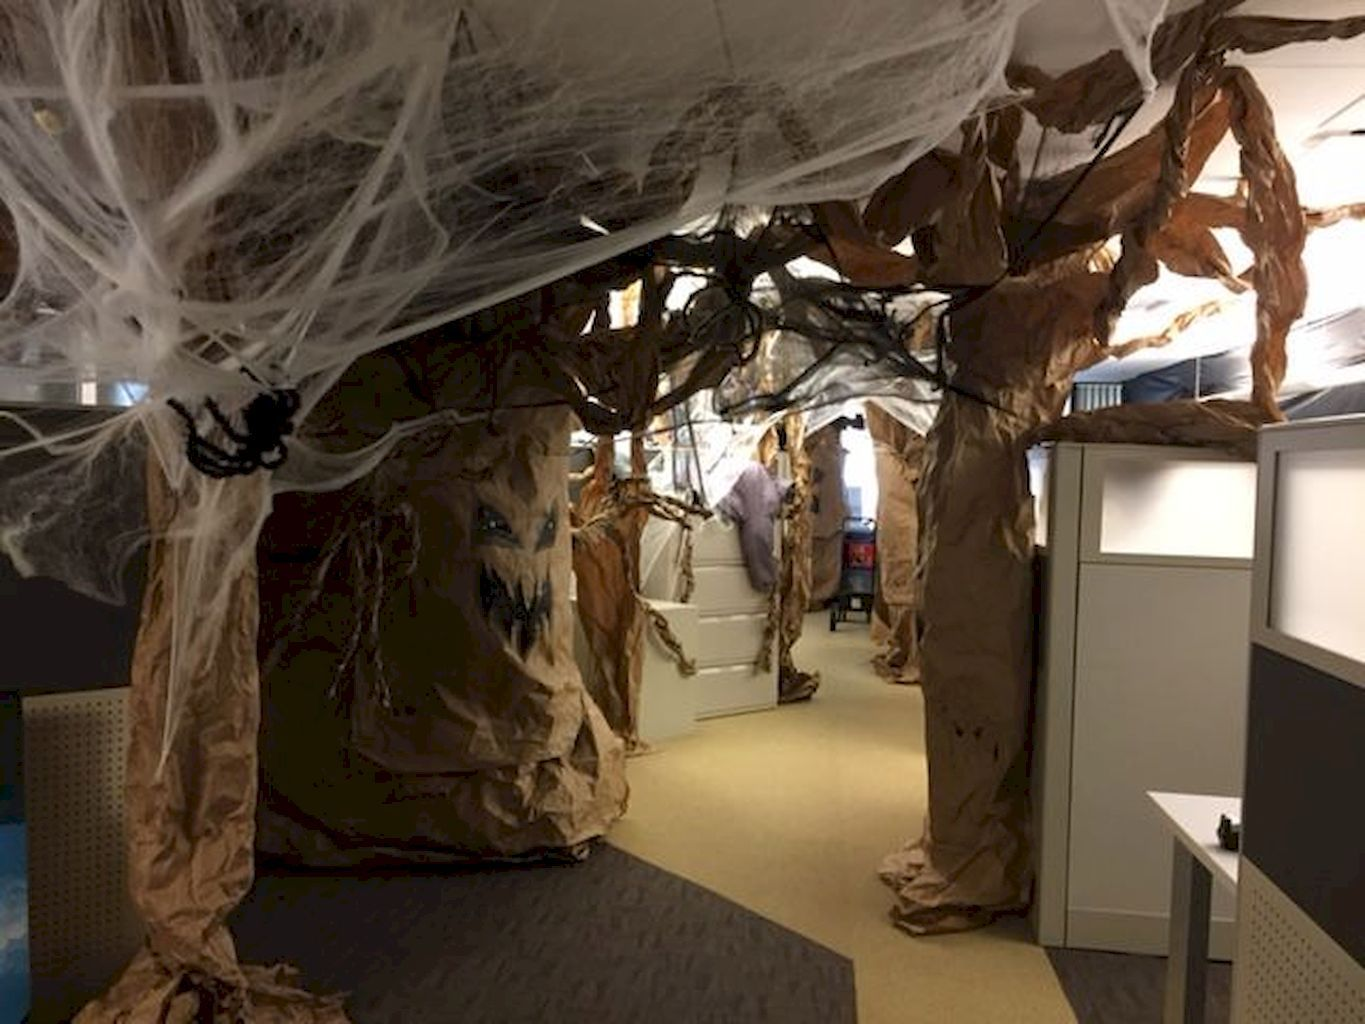 Halloween Office Decoration 70 Creepy Cubical Ideas Elonahome Com Office Halloween Decorations Halloween Cubicle Halloween Office